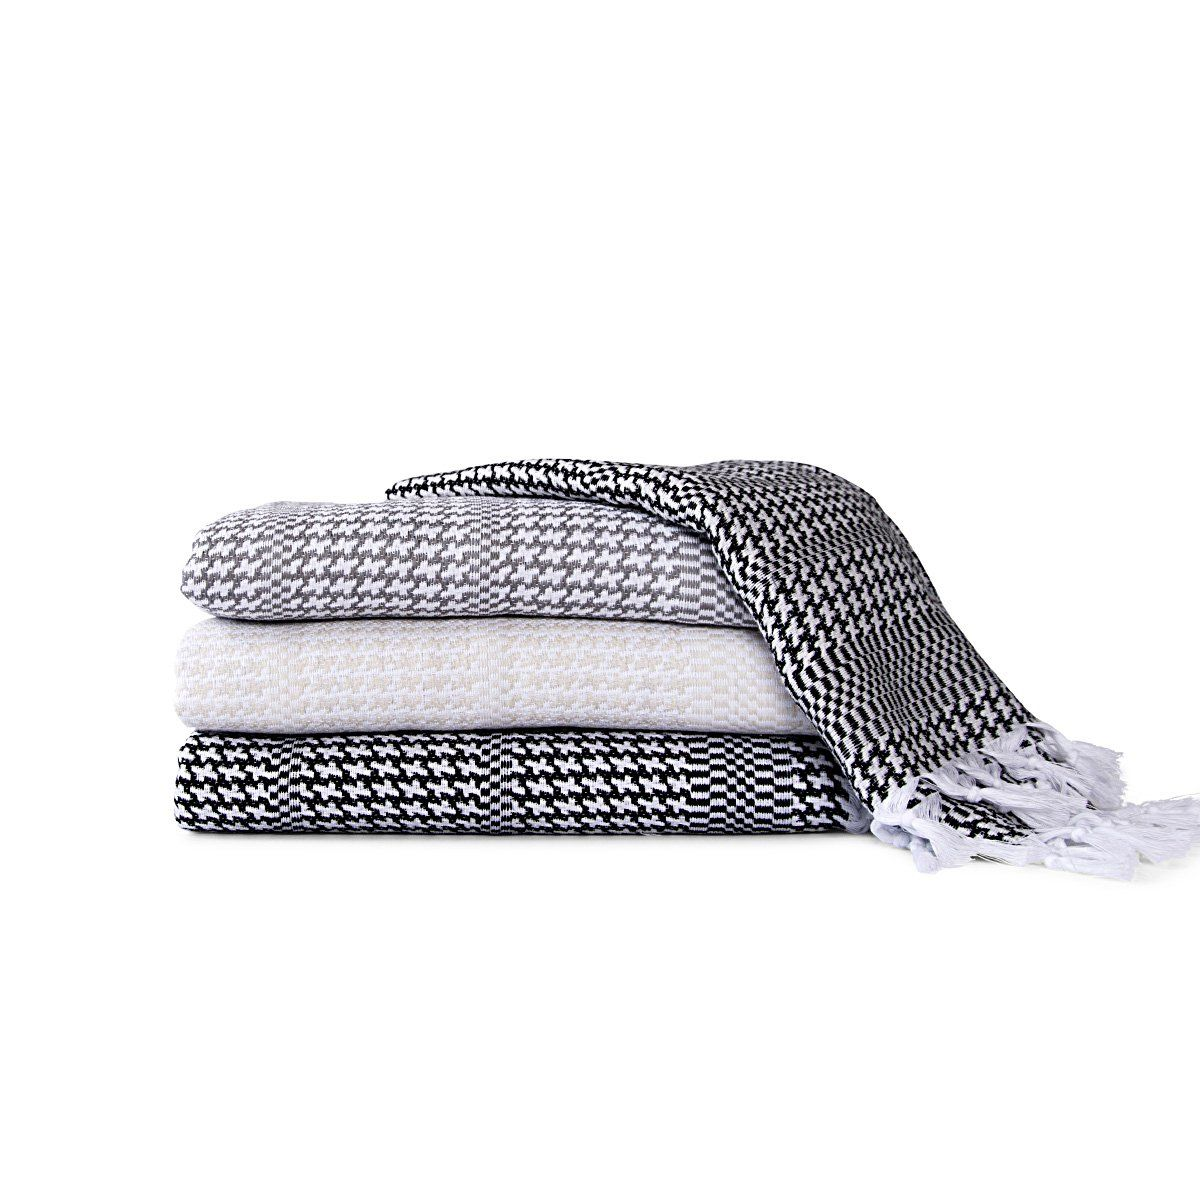 Houndstooth Turkish Towel Collection | Towels, Bath and Cotton towels